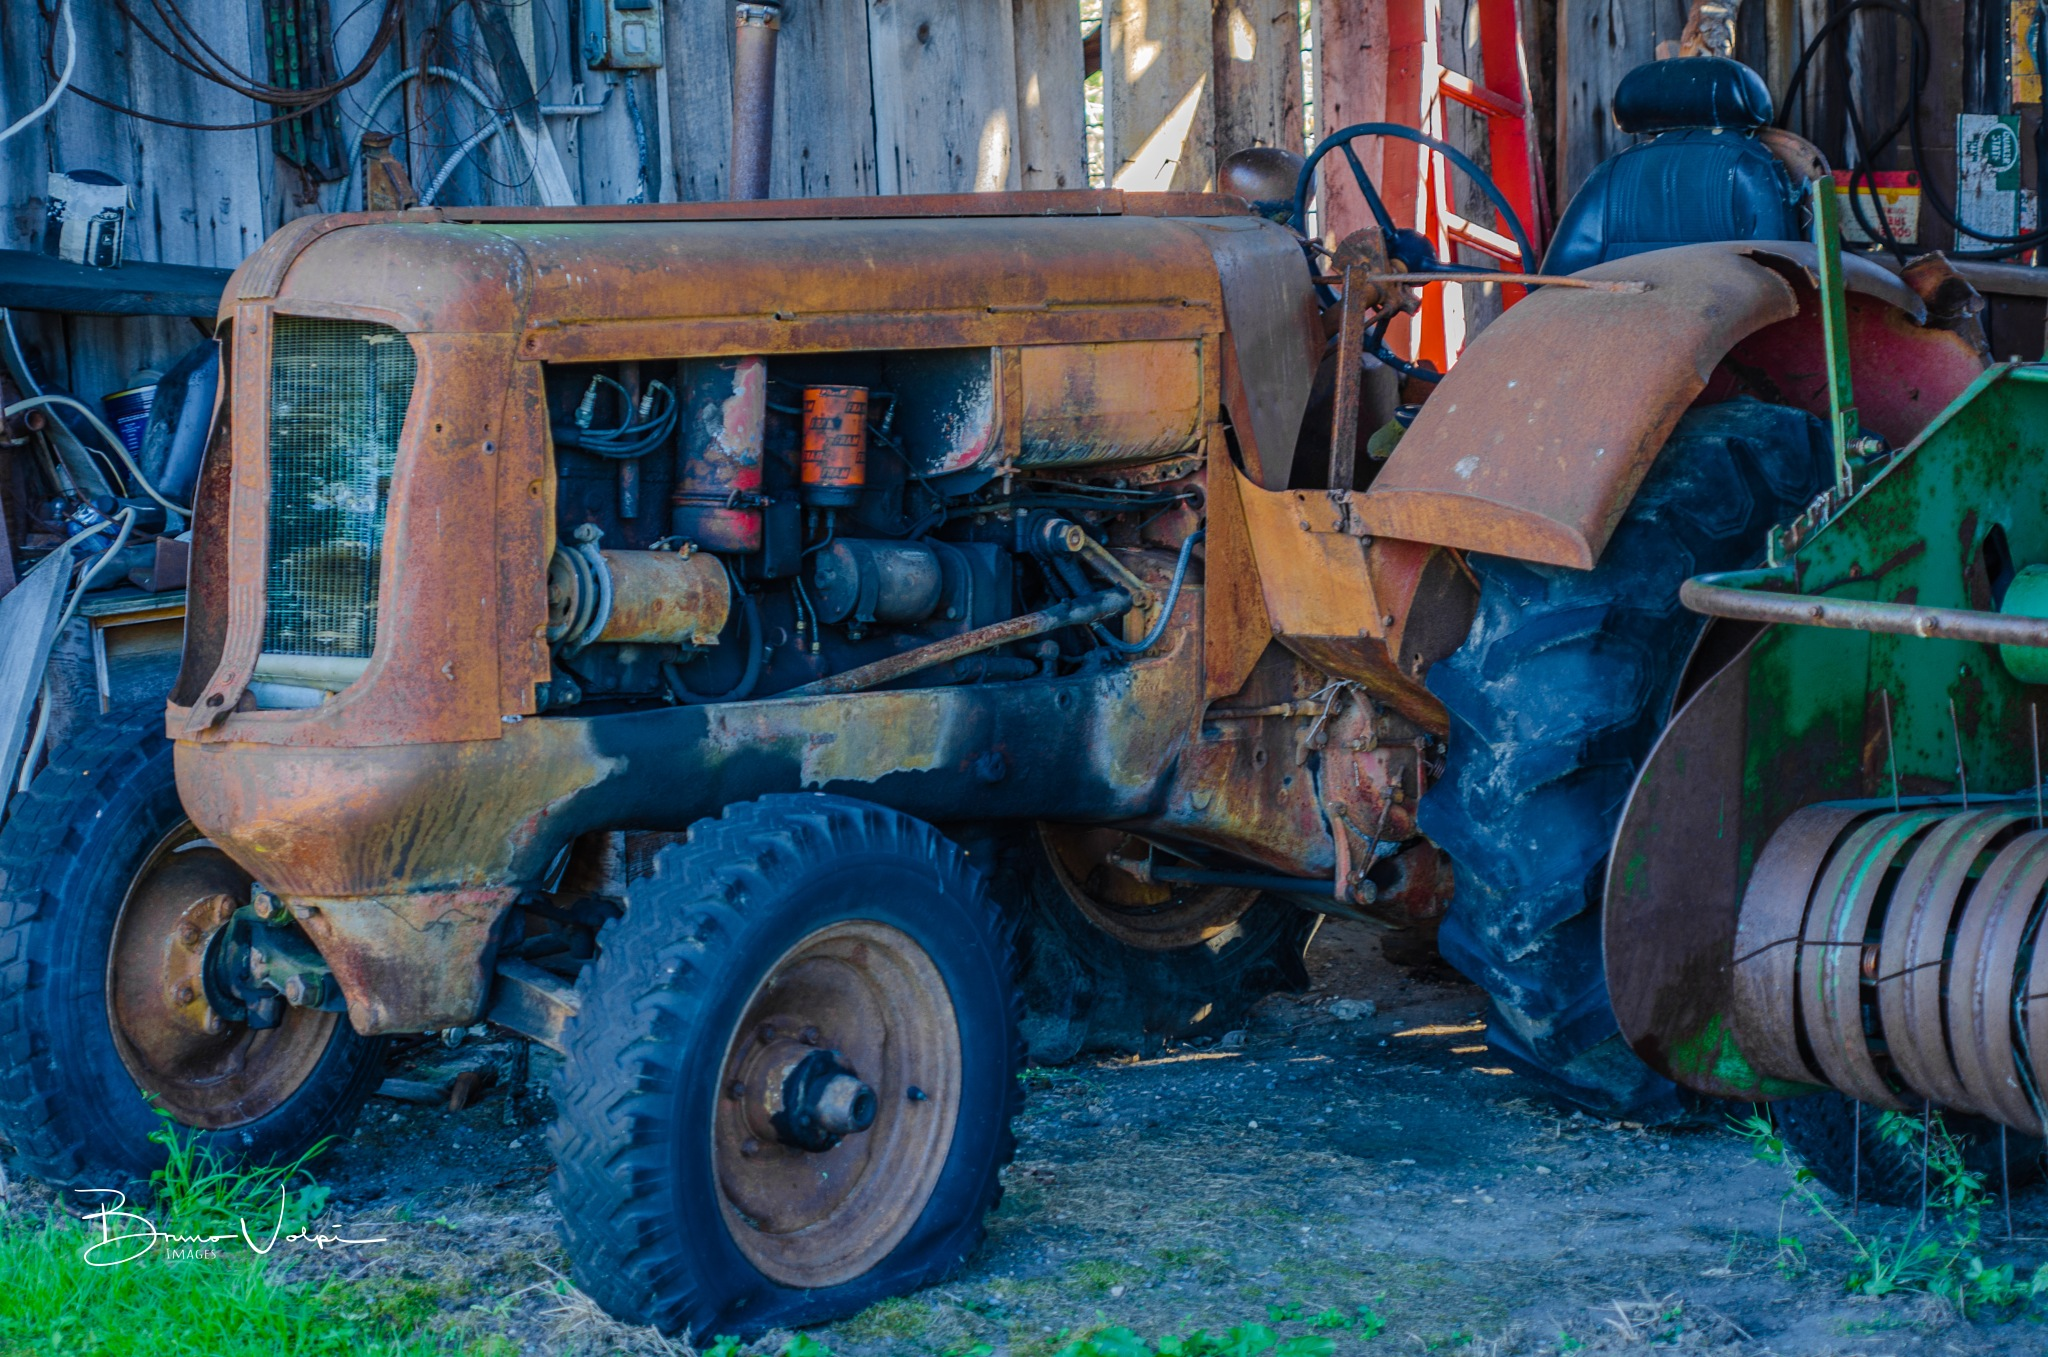 Old Tractor by Bruno V.